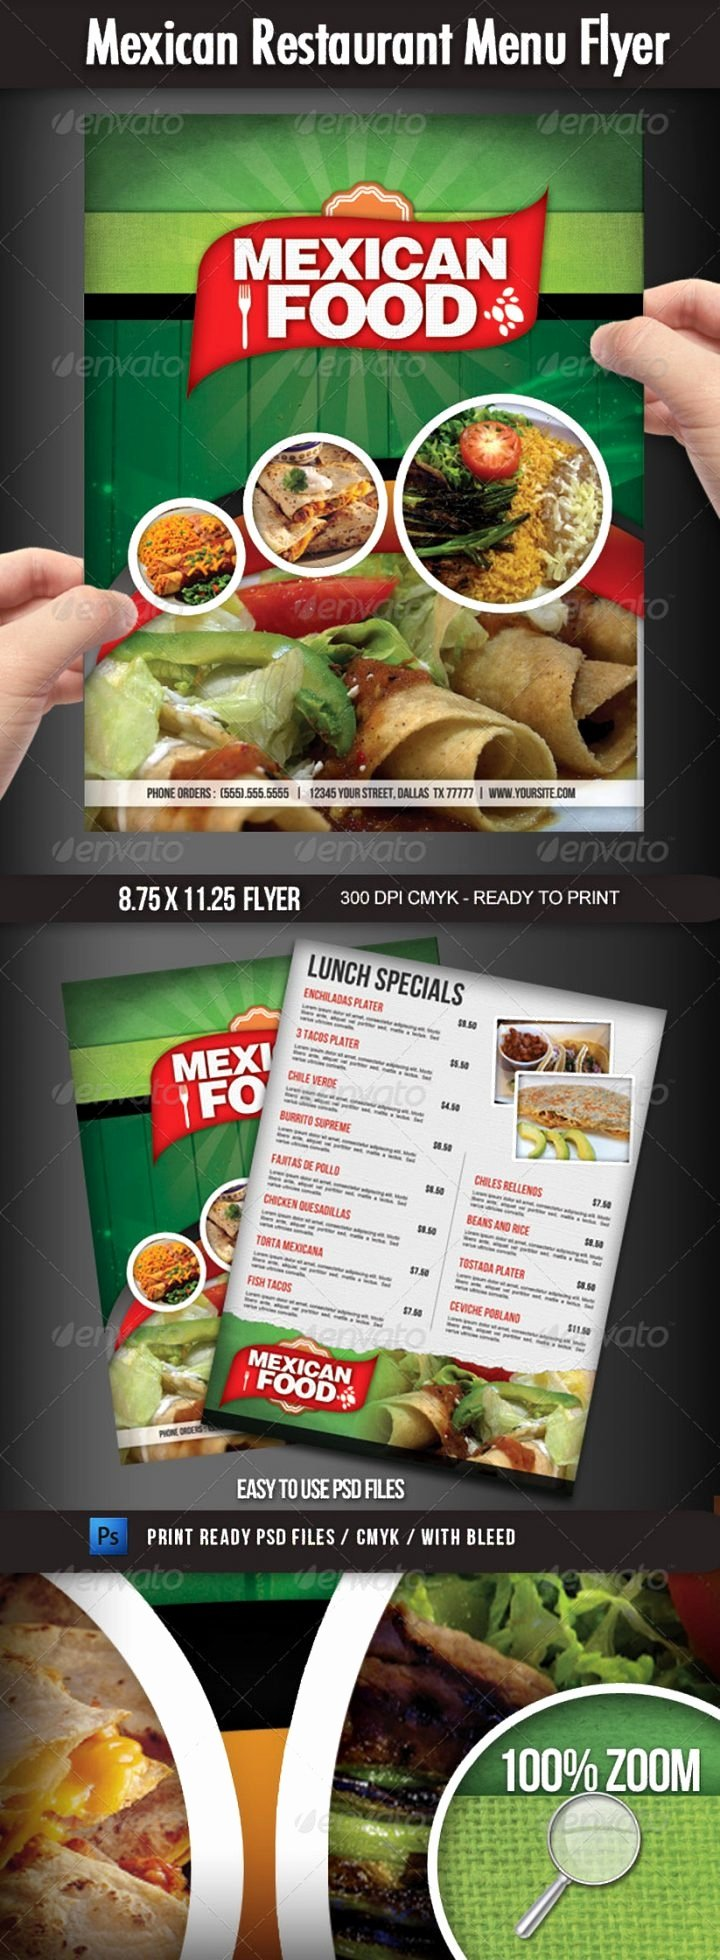 Restaurant Flyers Templates Free Fresh 9 Mexican Restaurant Menu and Flyer Templates